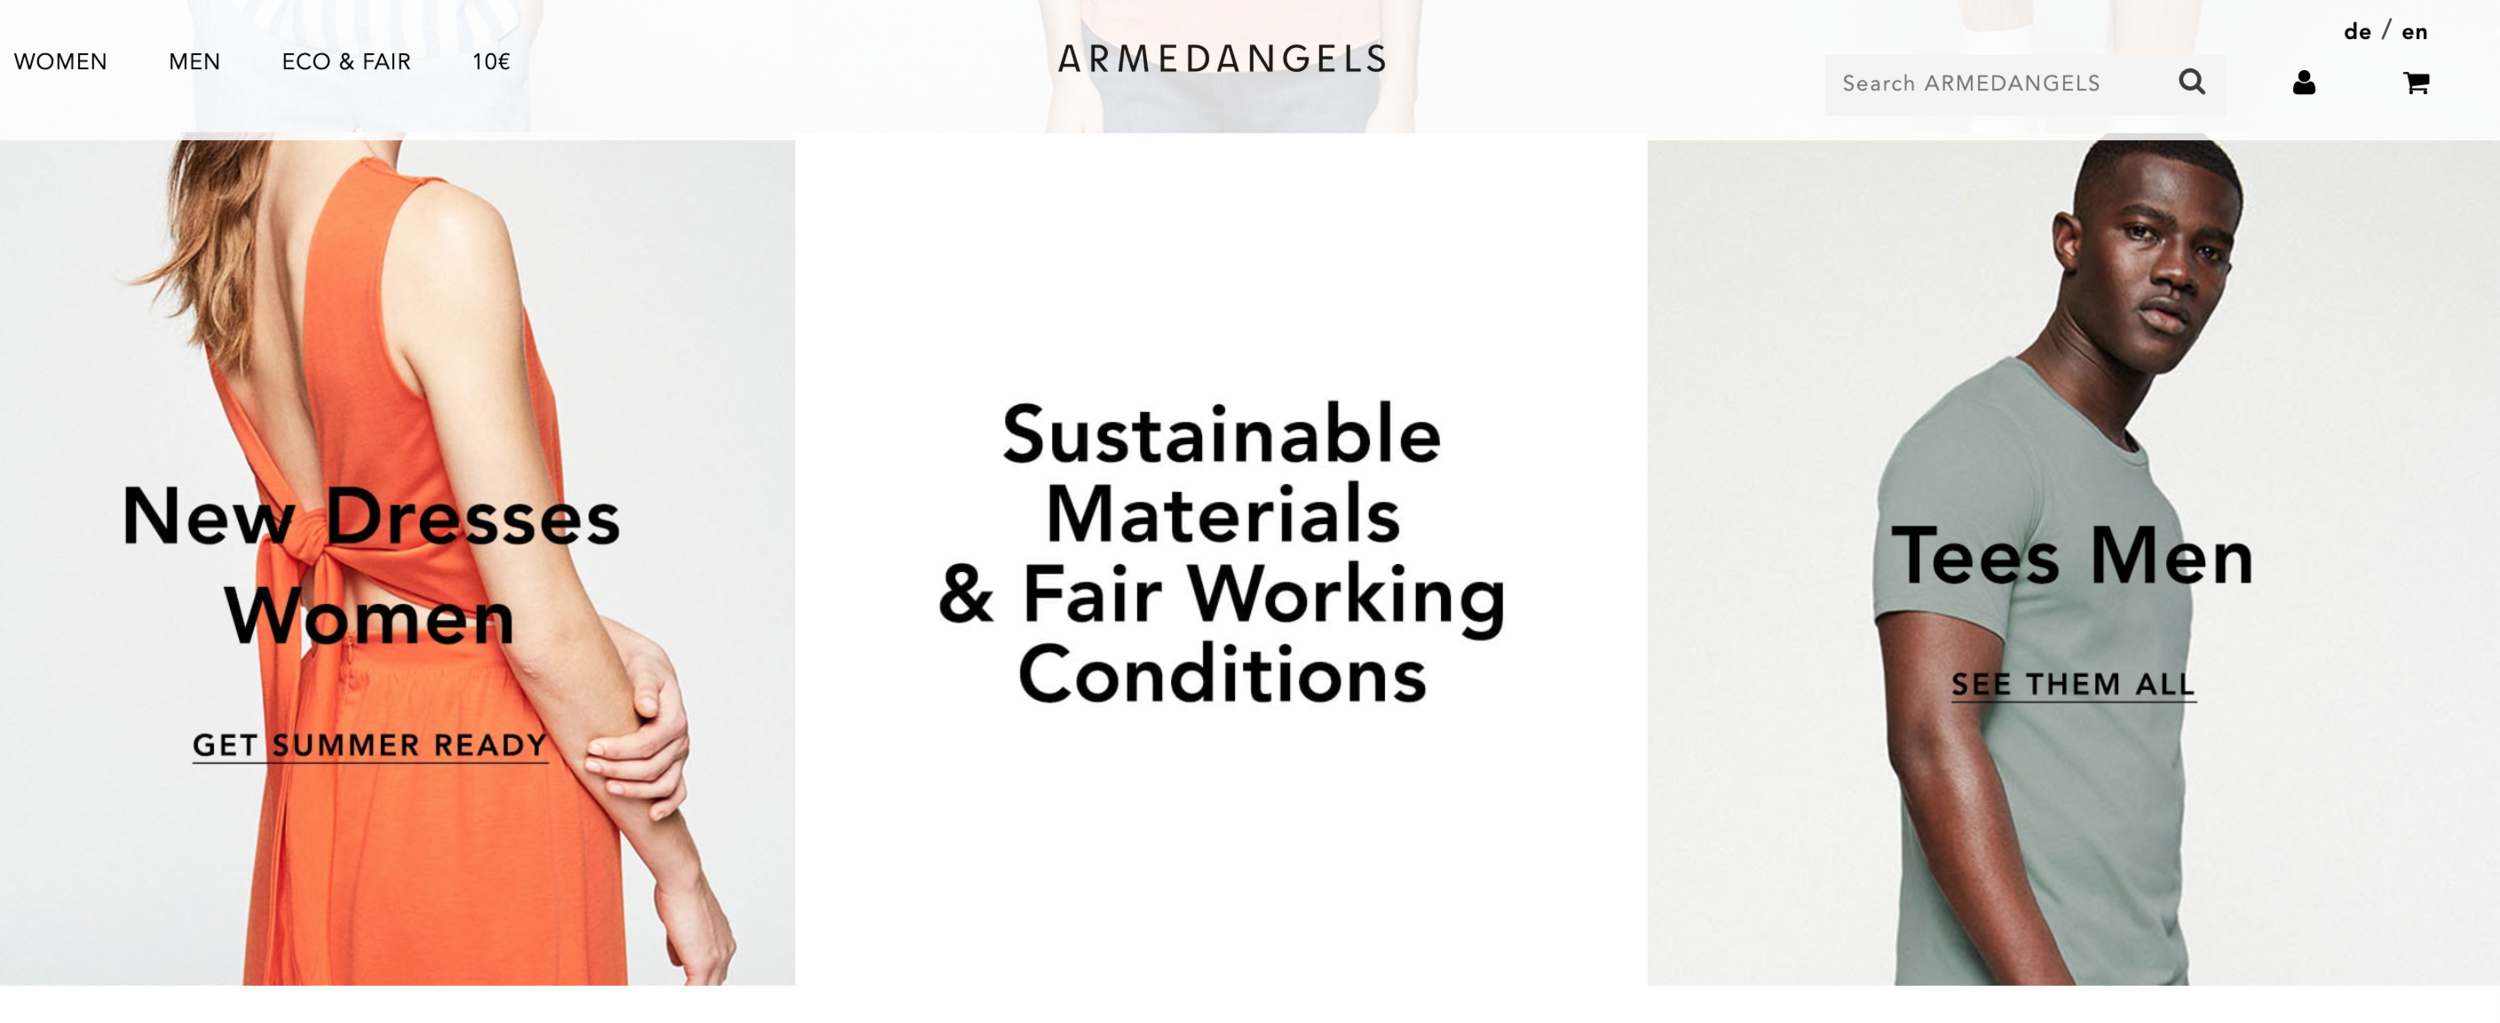 ARMEDANGELS - For basic pieces that are affordable and eco-friendly. Sustainability is at the core of ARMEDANGELS. Even the packaging used to ship the clothes is made from 40% grass and 60% FSC-certified wood pulp. On top of the clothing, the website features many posts to help educate around sustainable fashion and living eco-consciously.